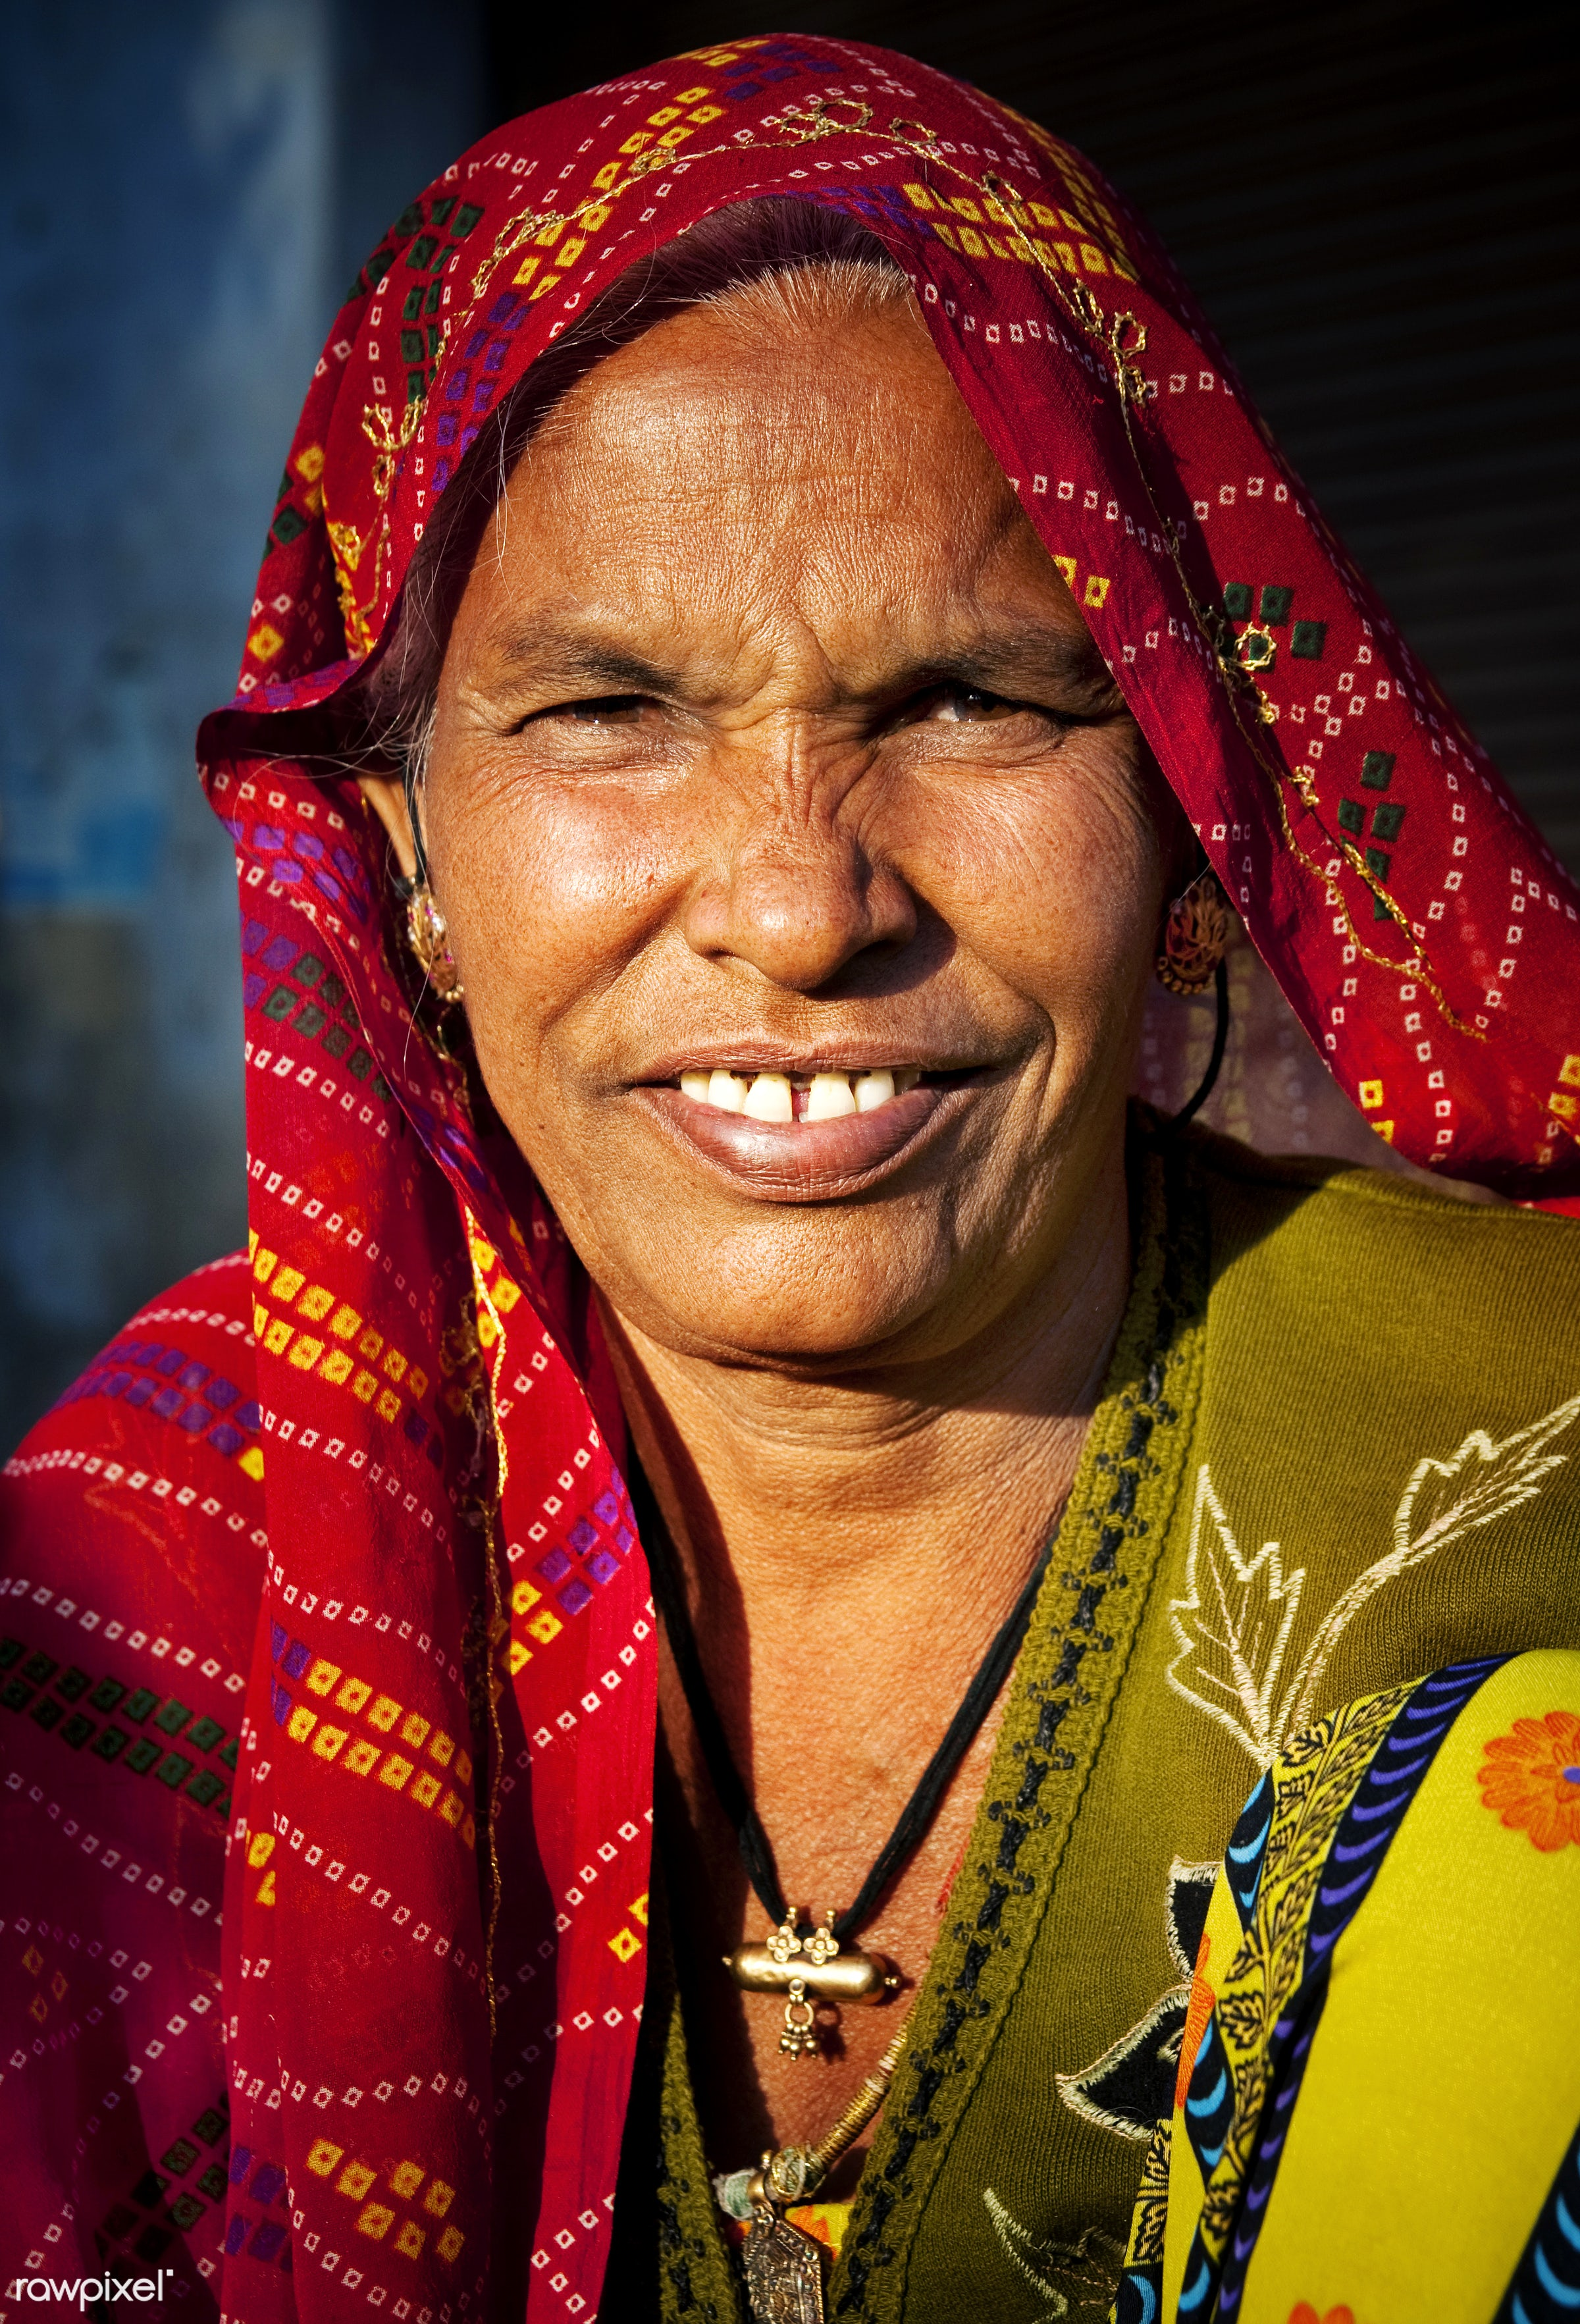 Portrait of a smiling Indian woman - lifestyles, adult, asia, characters, cheerful, dress, ethnic, expressing positivity,...